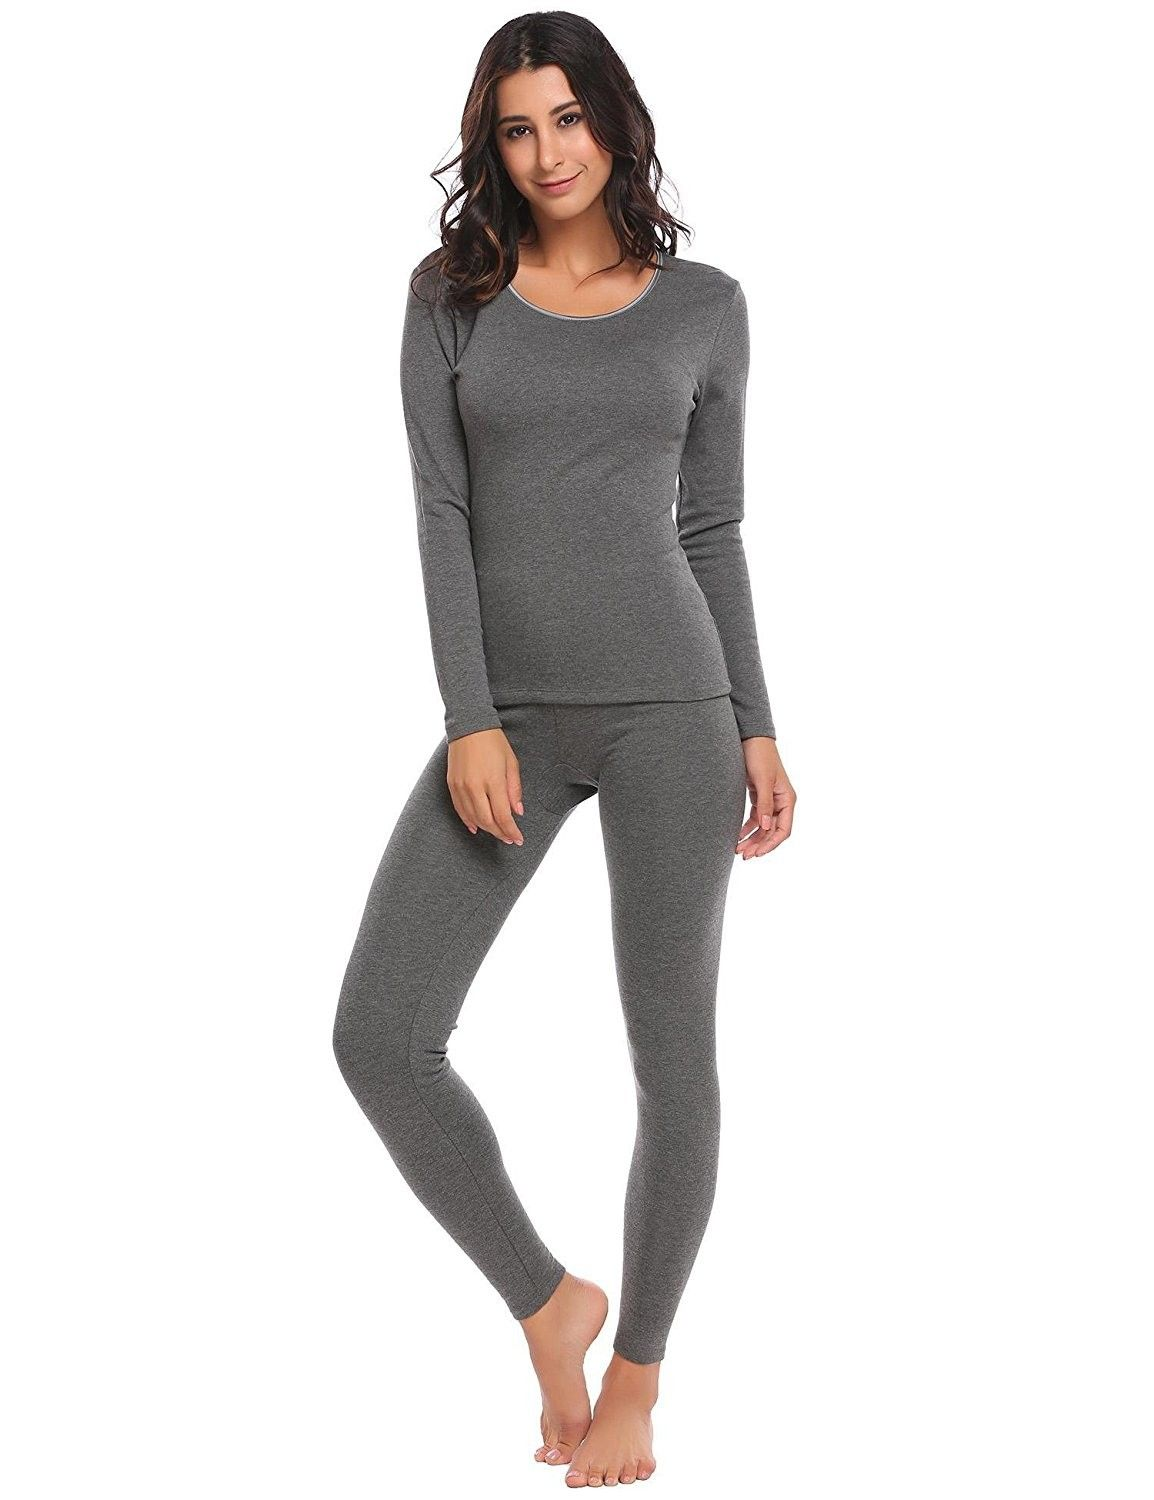 dbef42b95333 Women's Clothing, Lingerie, Sleep & Lounge, Thermal Underwear,Womens  Thermal 2 Pcs Underwear Set Soft Top and Bottom Pajama S-XXXL -  Midweight-grey ...